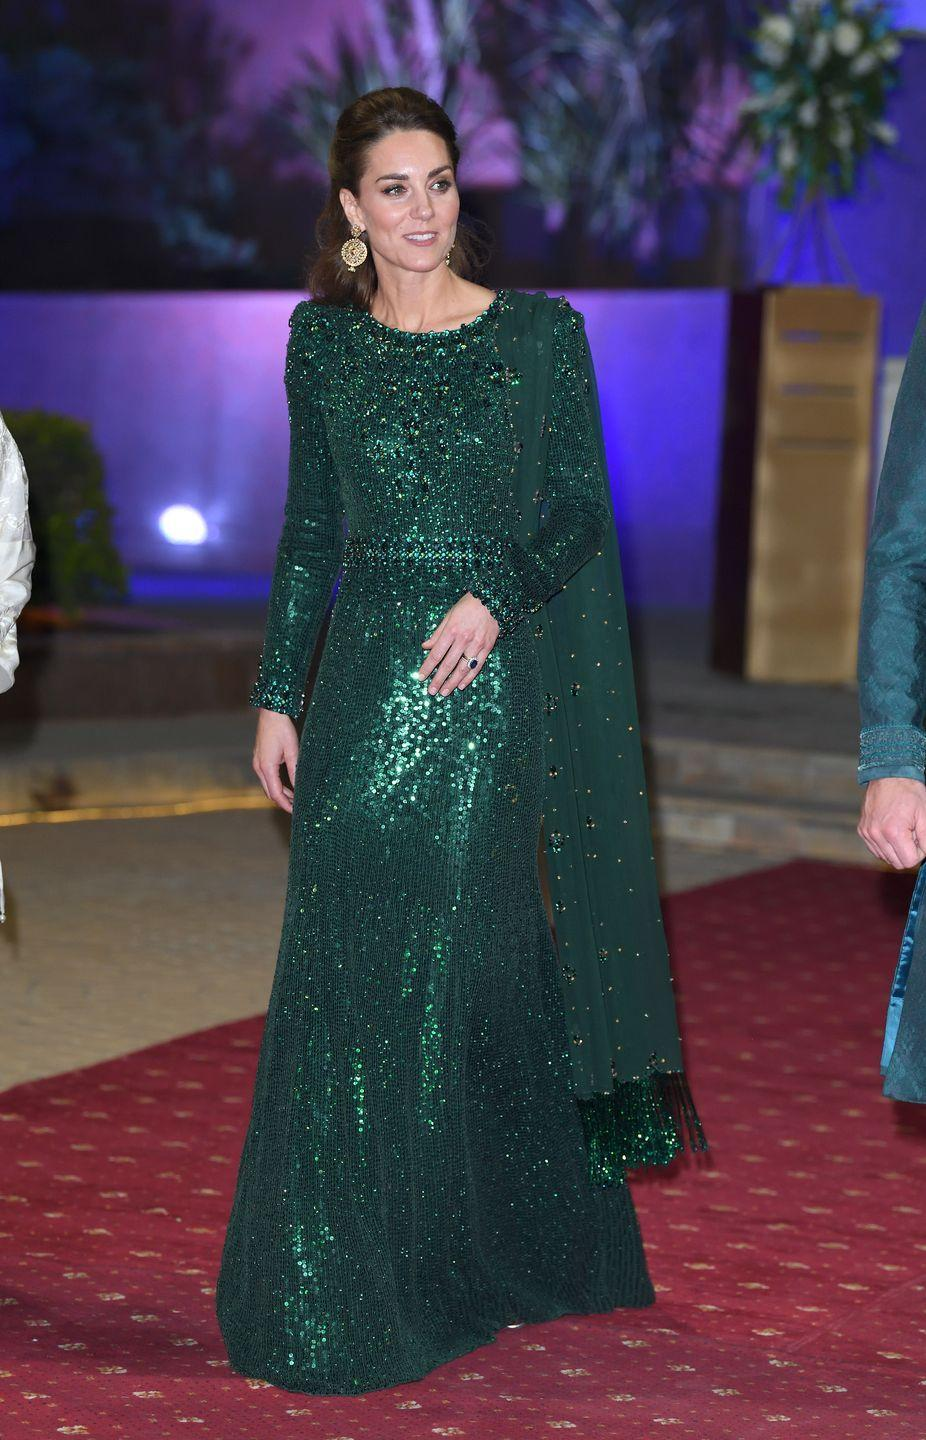 <p>During a state visit to Pakistan, Kate Middleton dazzled in an emerald sequin Jenny Packham gown. The Duchess finished the long sleeve gown with a matching chiffon scarf and gold statement earrings. </p>